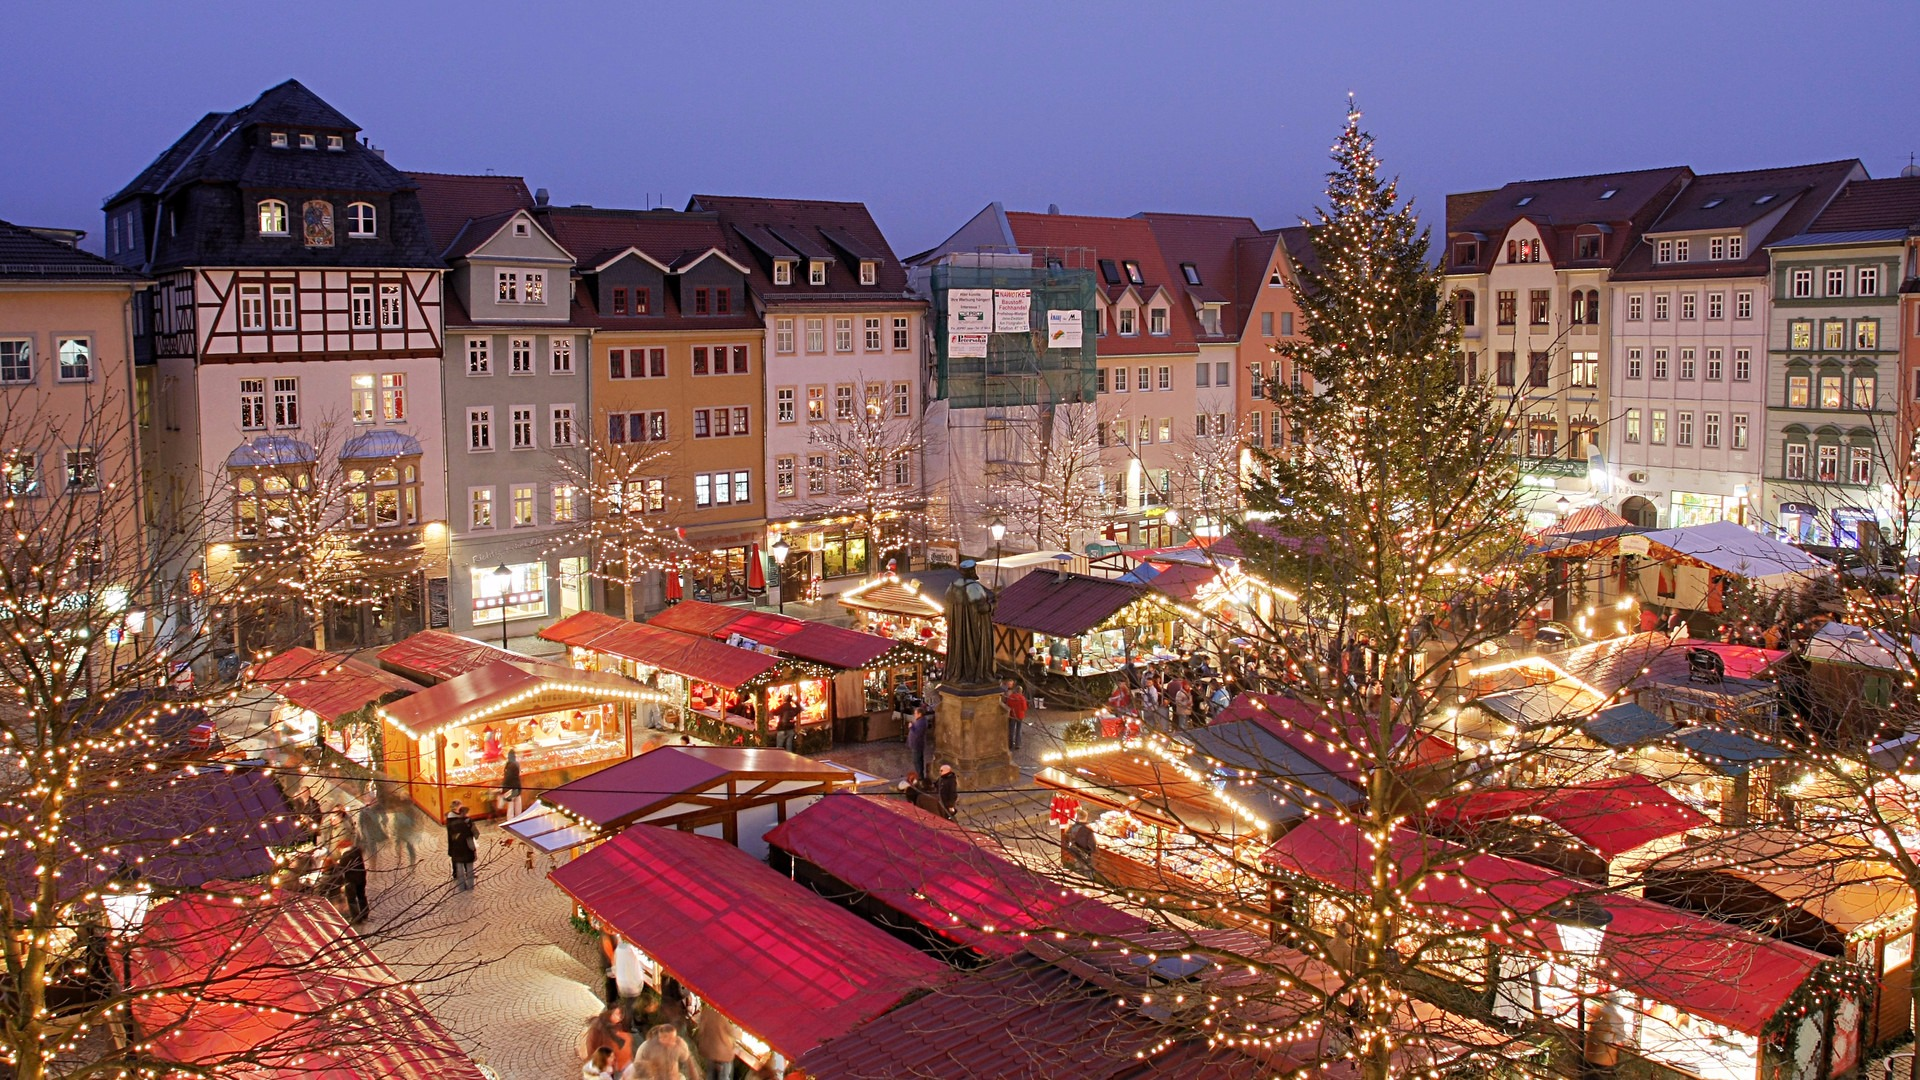 Christmas In Europe Wallpaper.Europe Where To Shop For Christmas Gifts